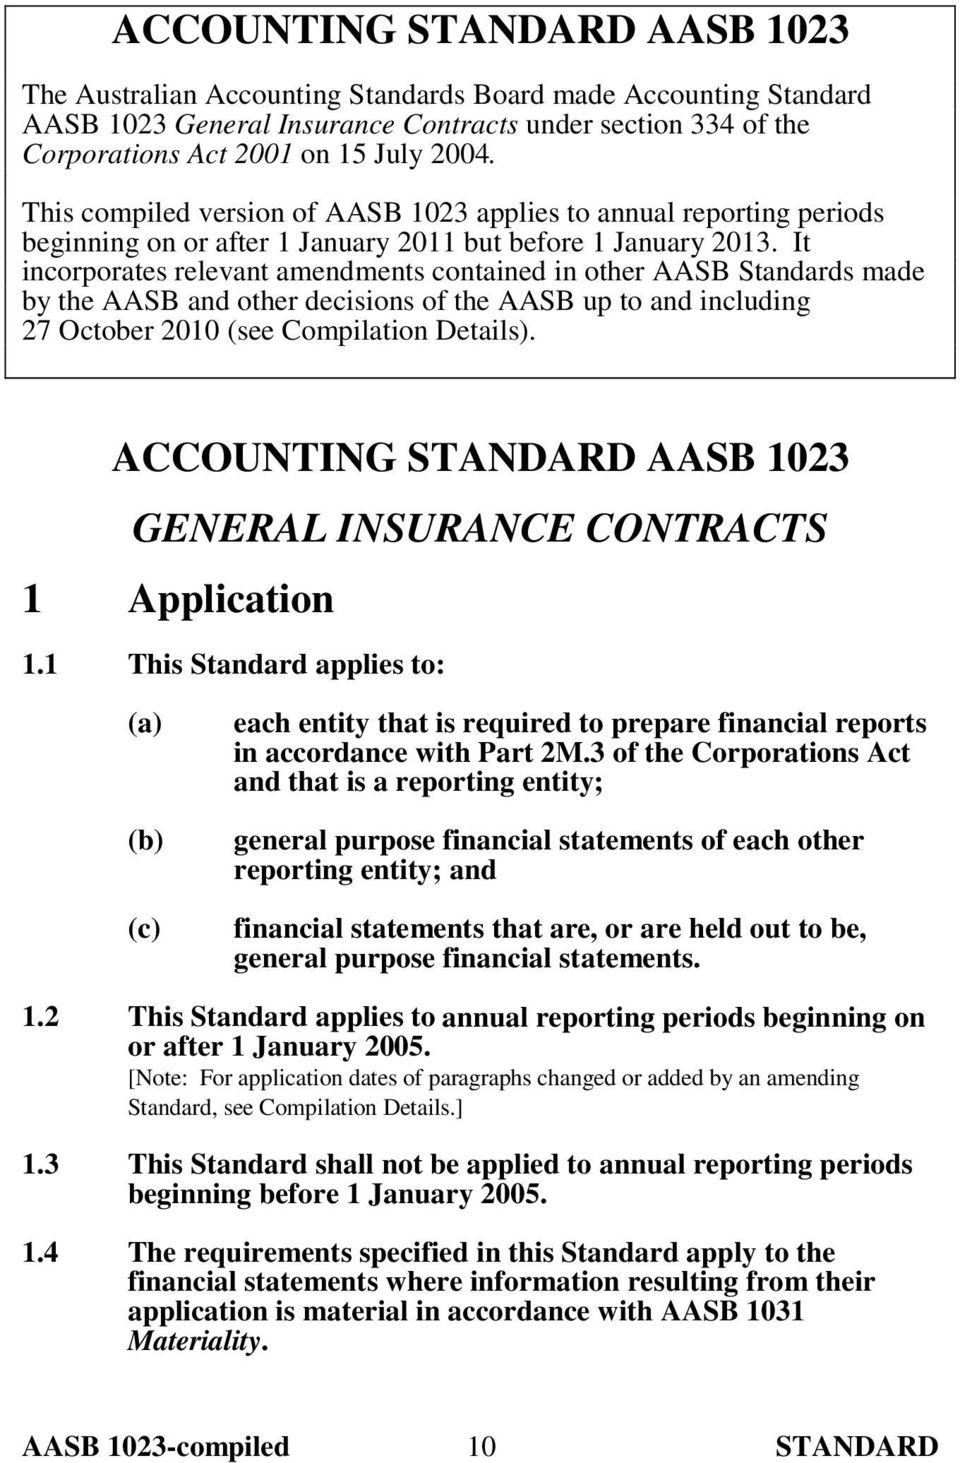 It incorporates relevant amendments contained in other AASB Standards made by the AASB and other decisions of the AASB up to and including 27 October 2010 (see Compilation Details).